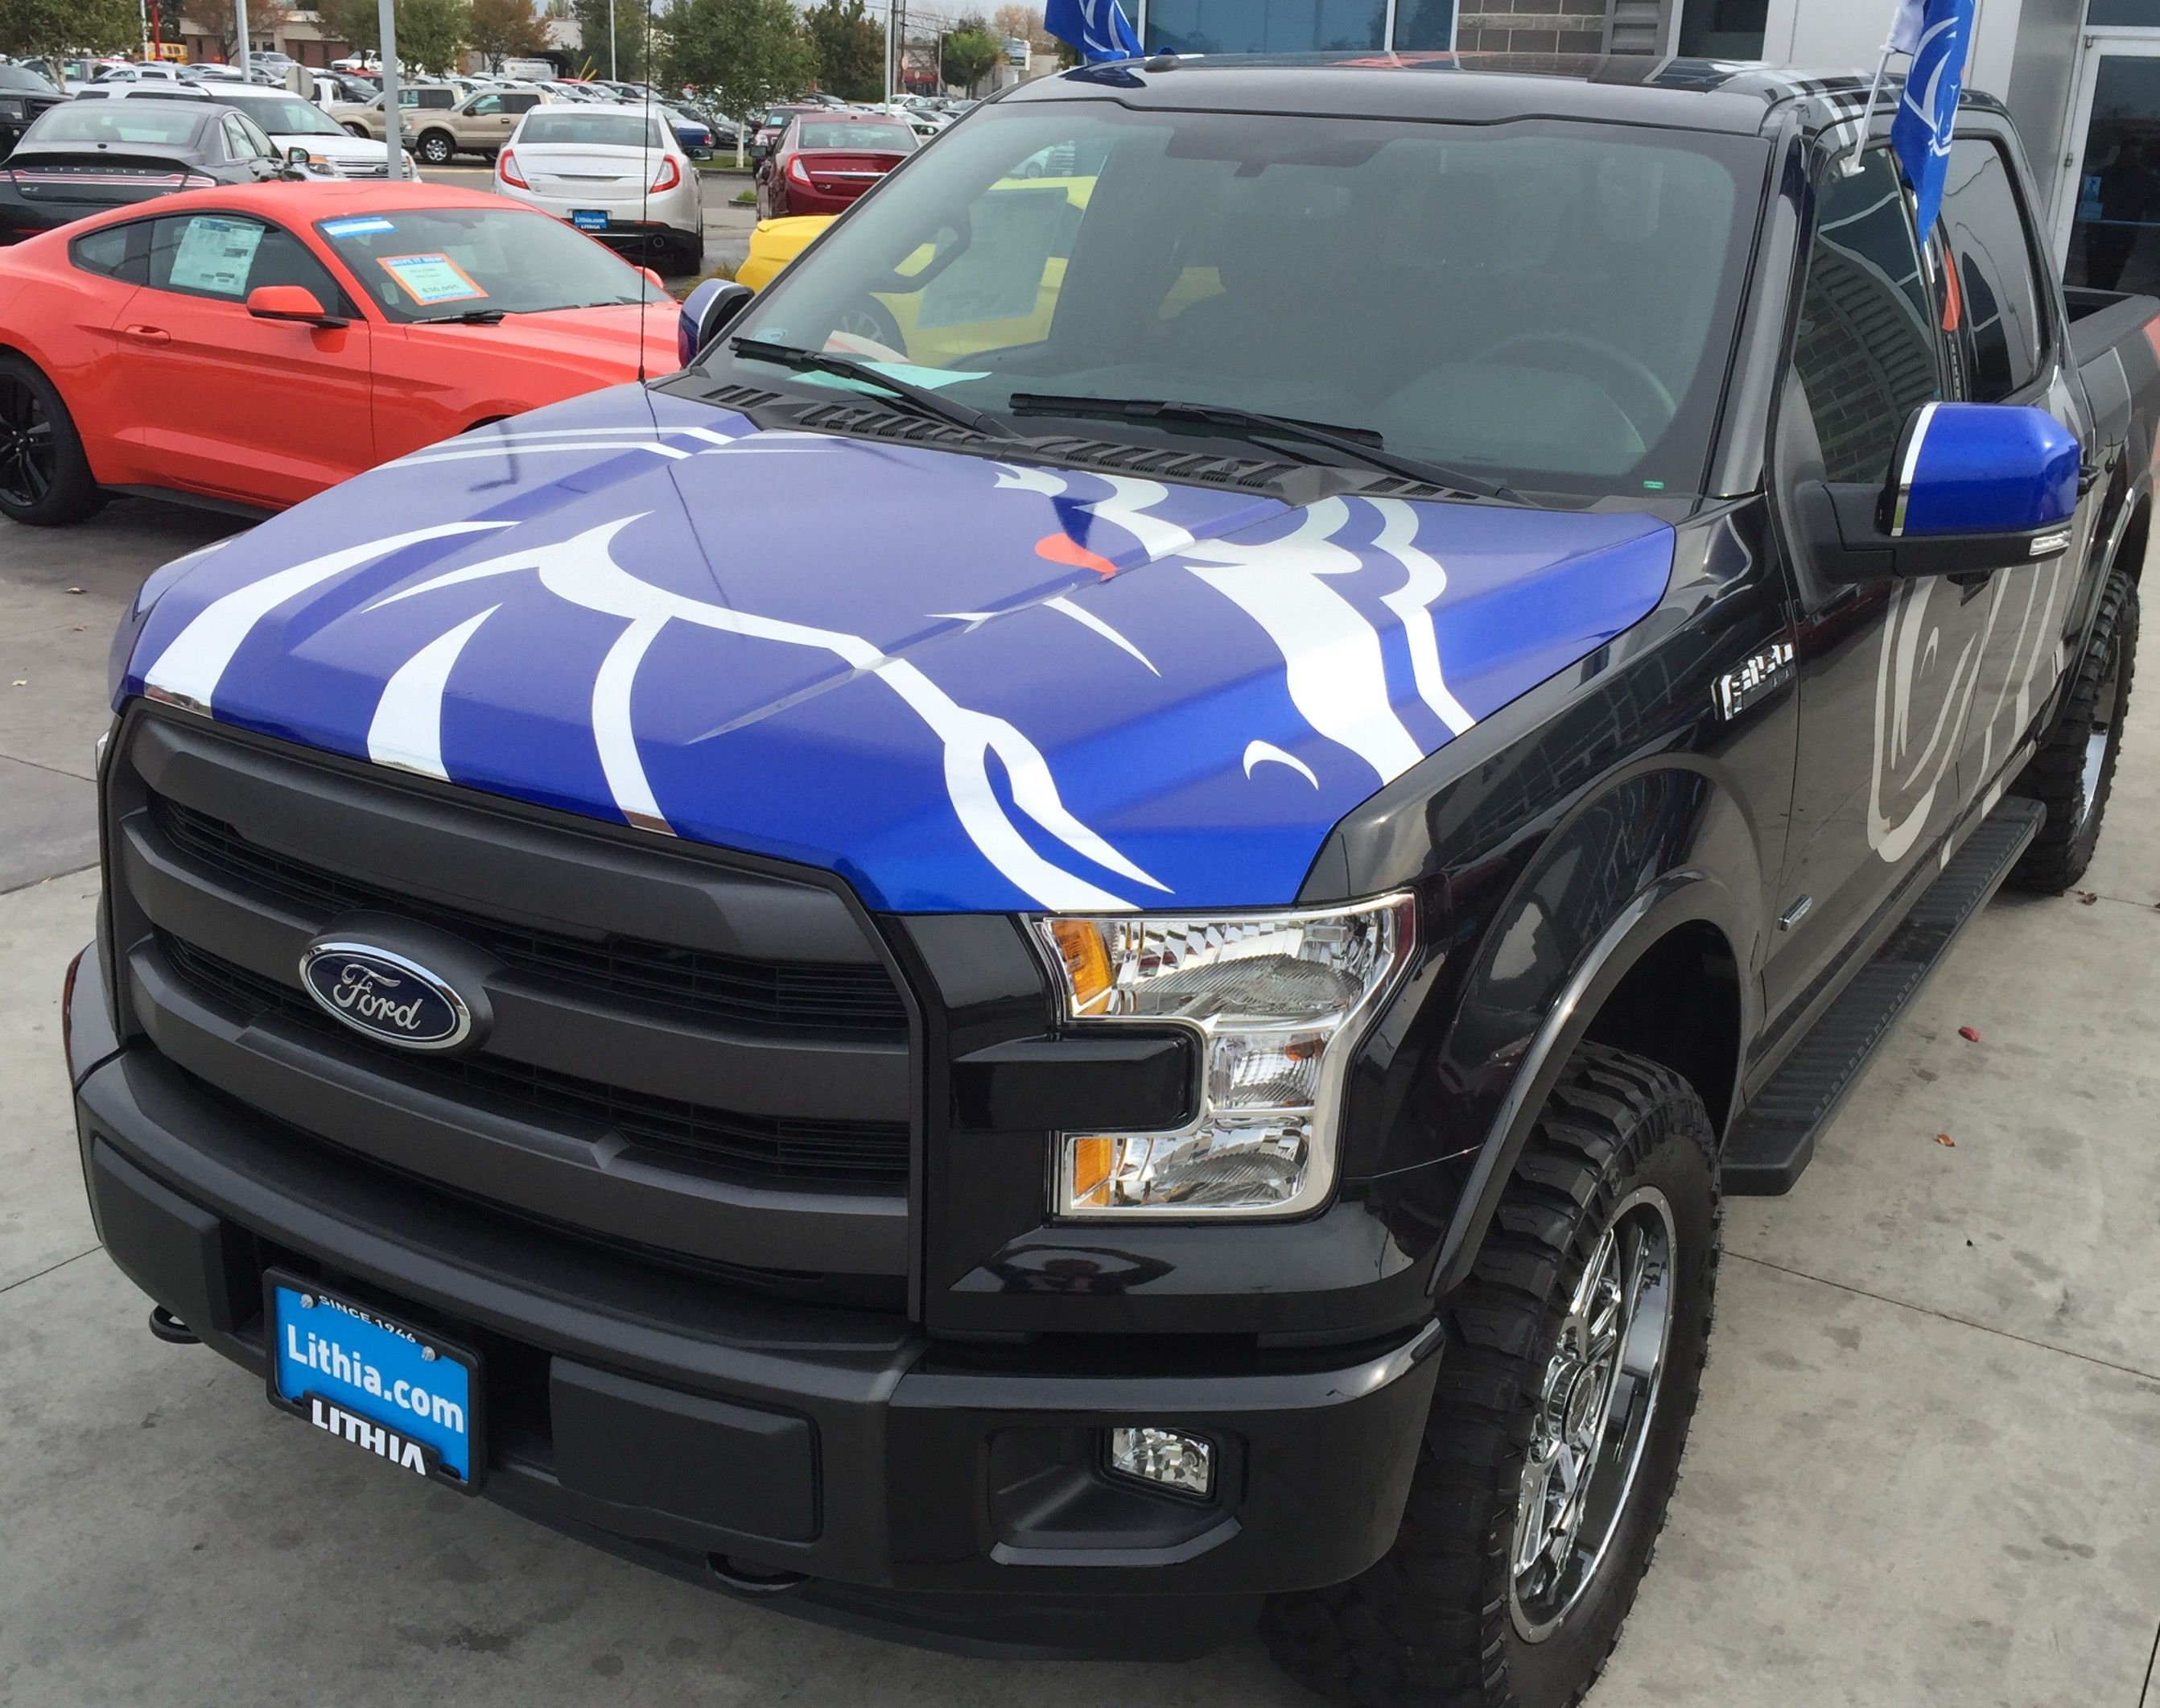 Boise State Broncos F 150 By Lithia Ford Ford Trucks Ford